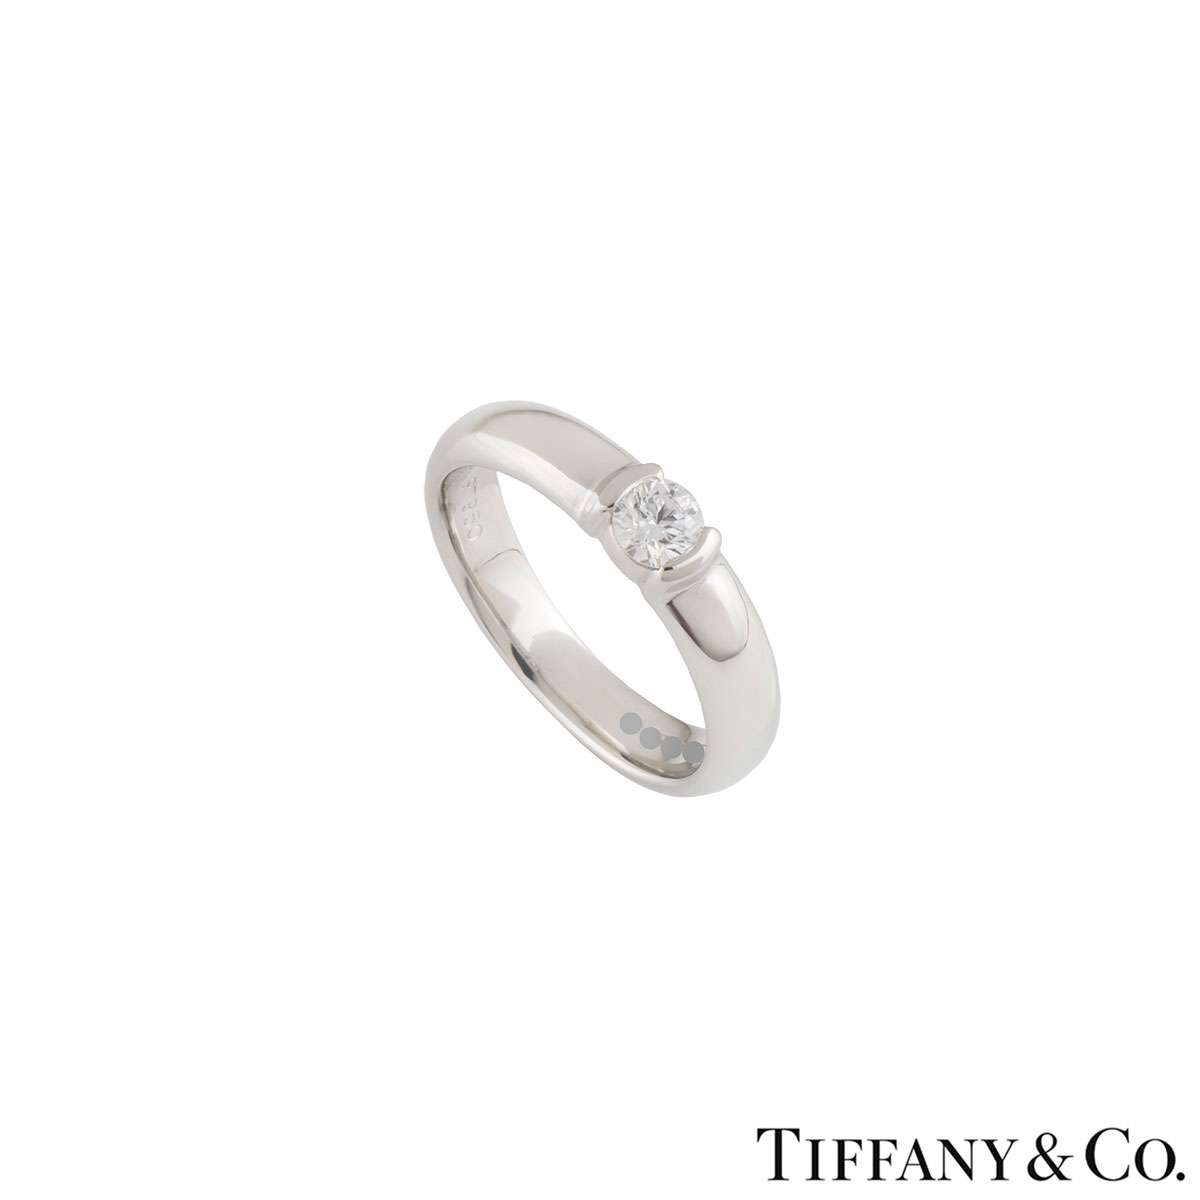 Tiffany & Co. Diamond Platinum Etoile Ring 0.23ct G/VS